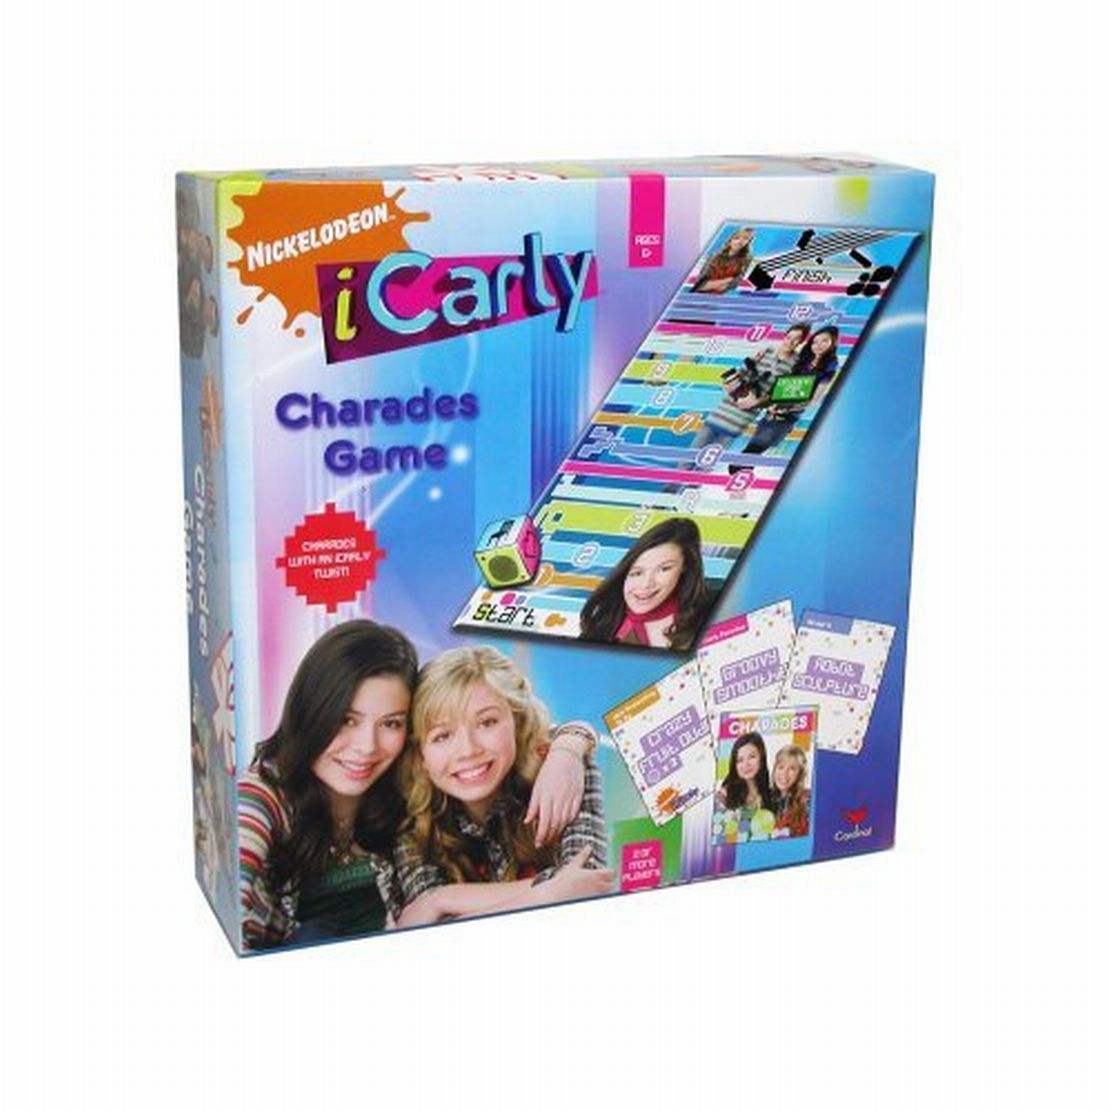 Nickelodeon iCarly Charades Game Wacky Act Out Fun